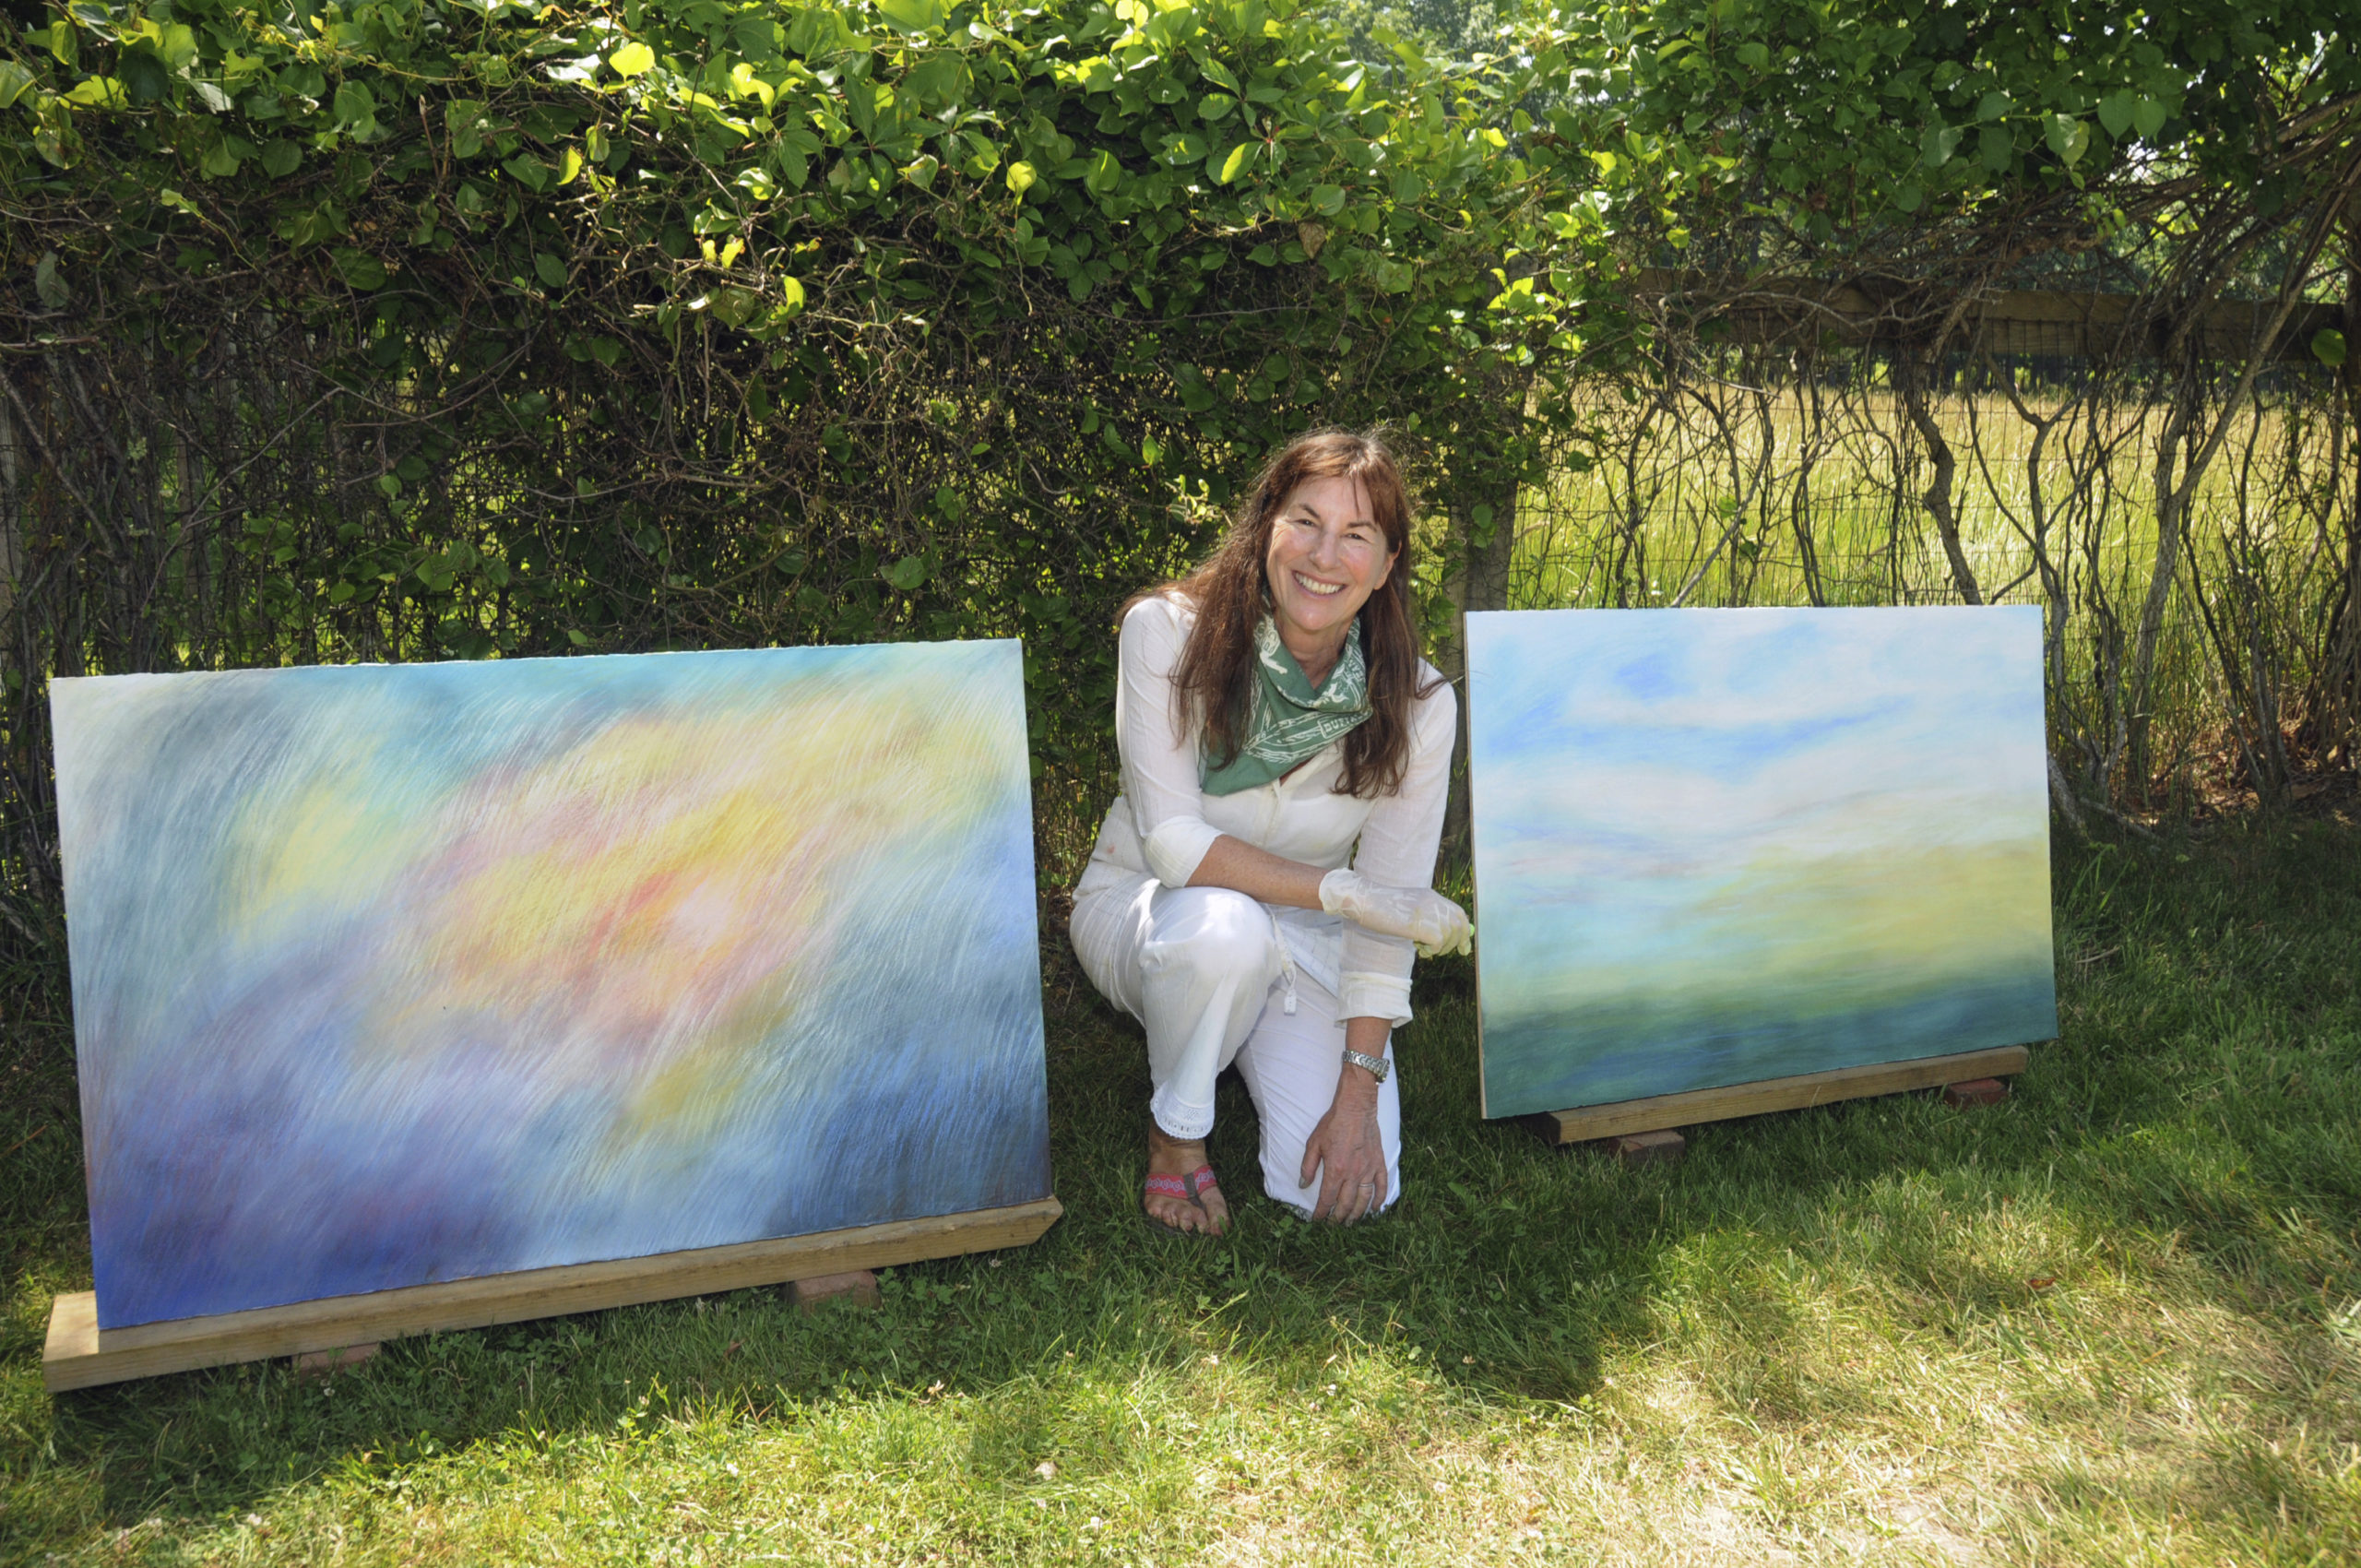 East Hampton Artist Barbara Thomas, along with 70 other EH Artists, set up her drive-by pop-up gallery in front of her home on Saturday for